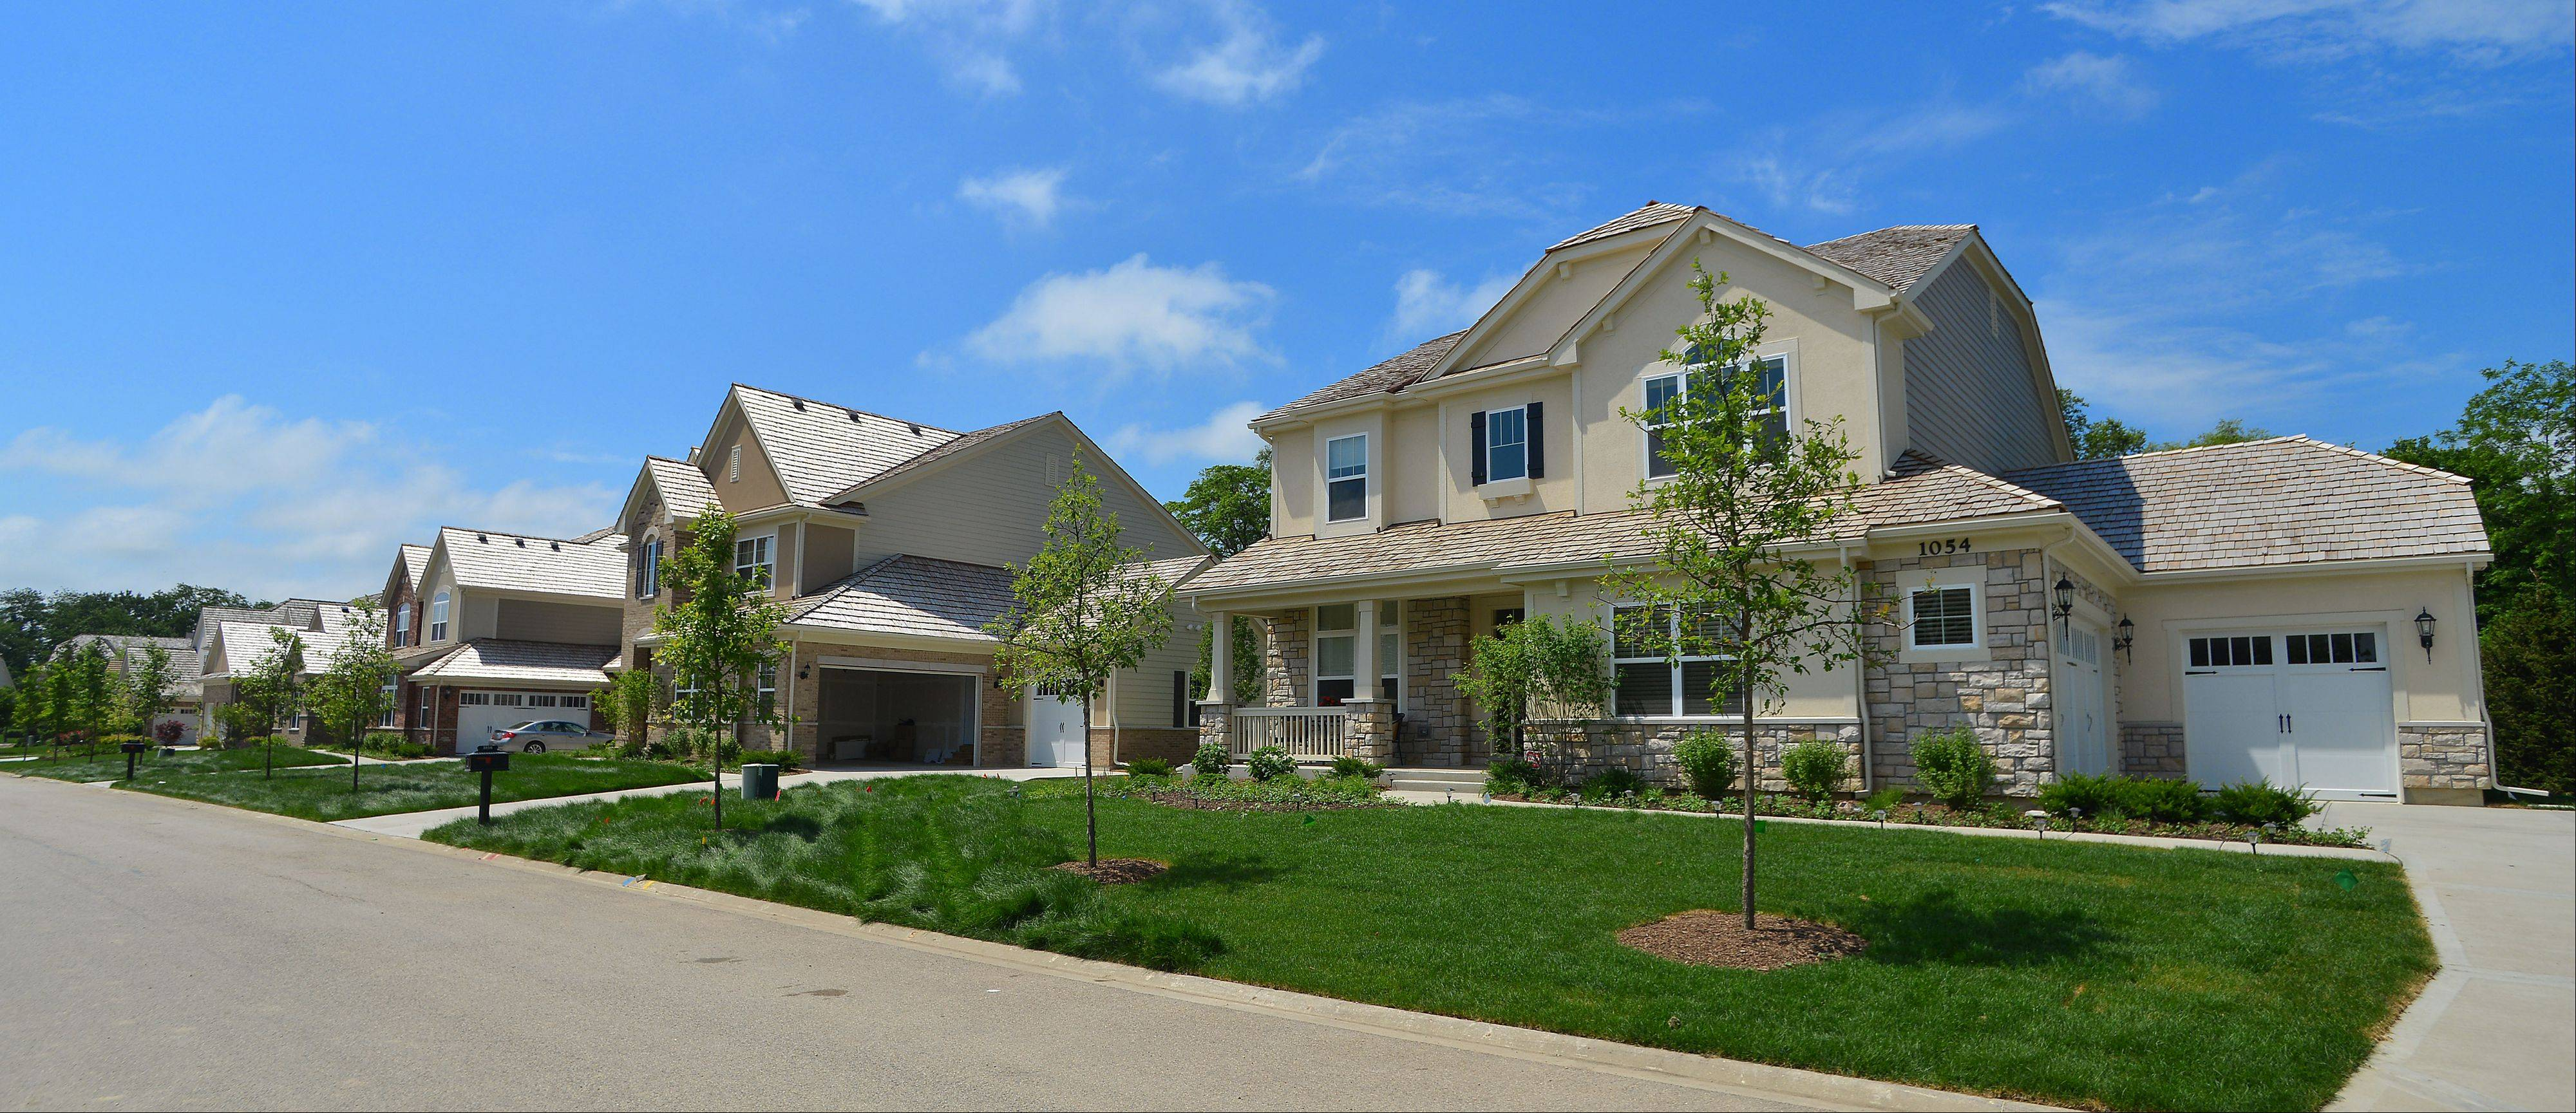 Creekside at Inverness Ridge sits in a picturesque are of Inverness, close to Crabtree Nature Center and Deer Grove Forest Preserve.